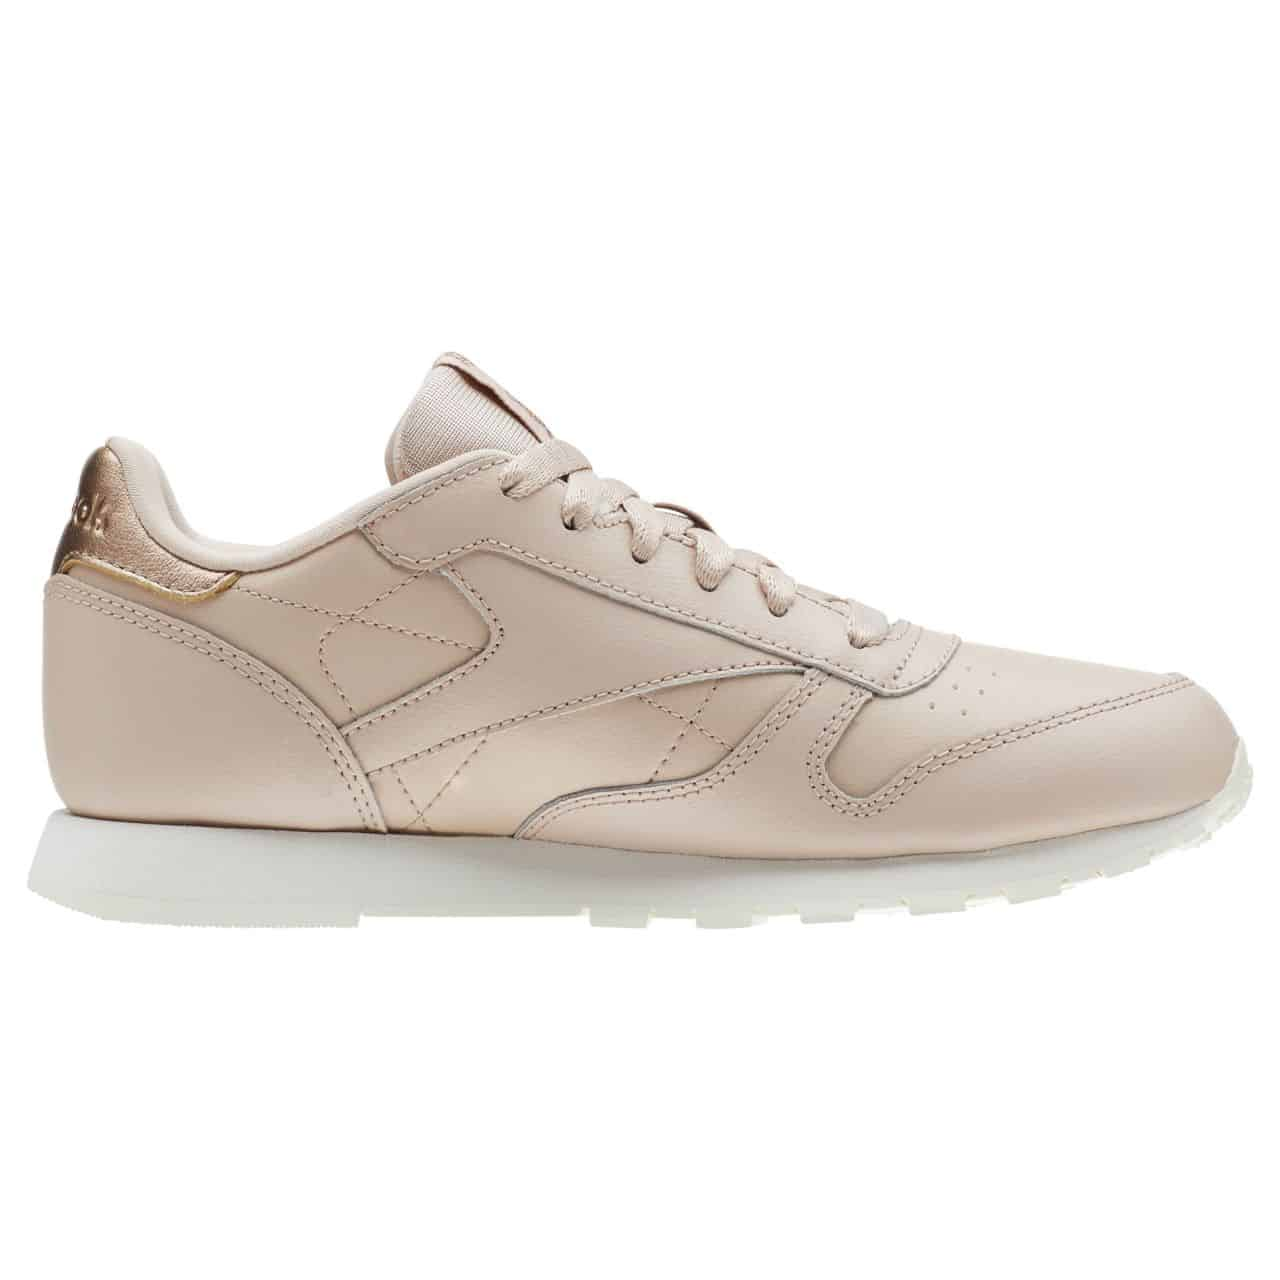 ADIDASI REEBOK CLASSIC LEATHER - CN5560 2